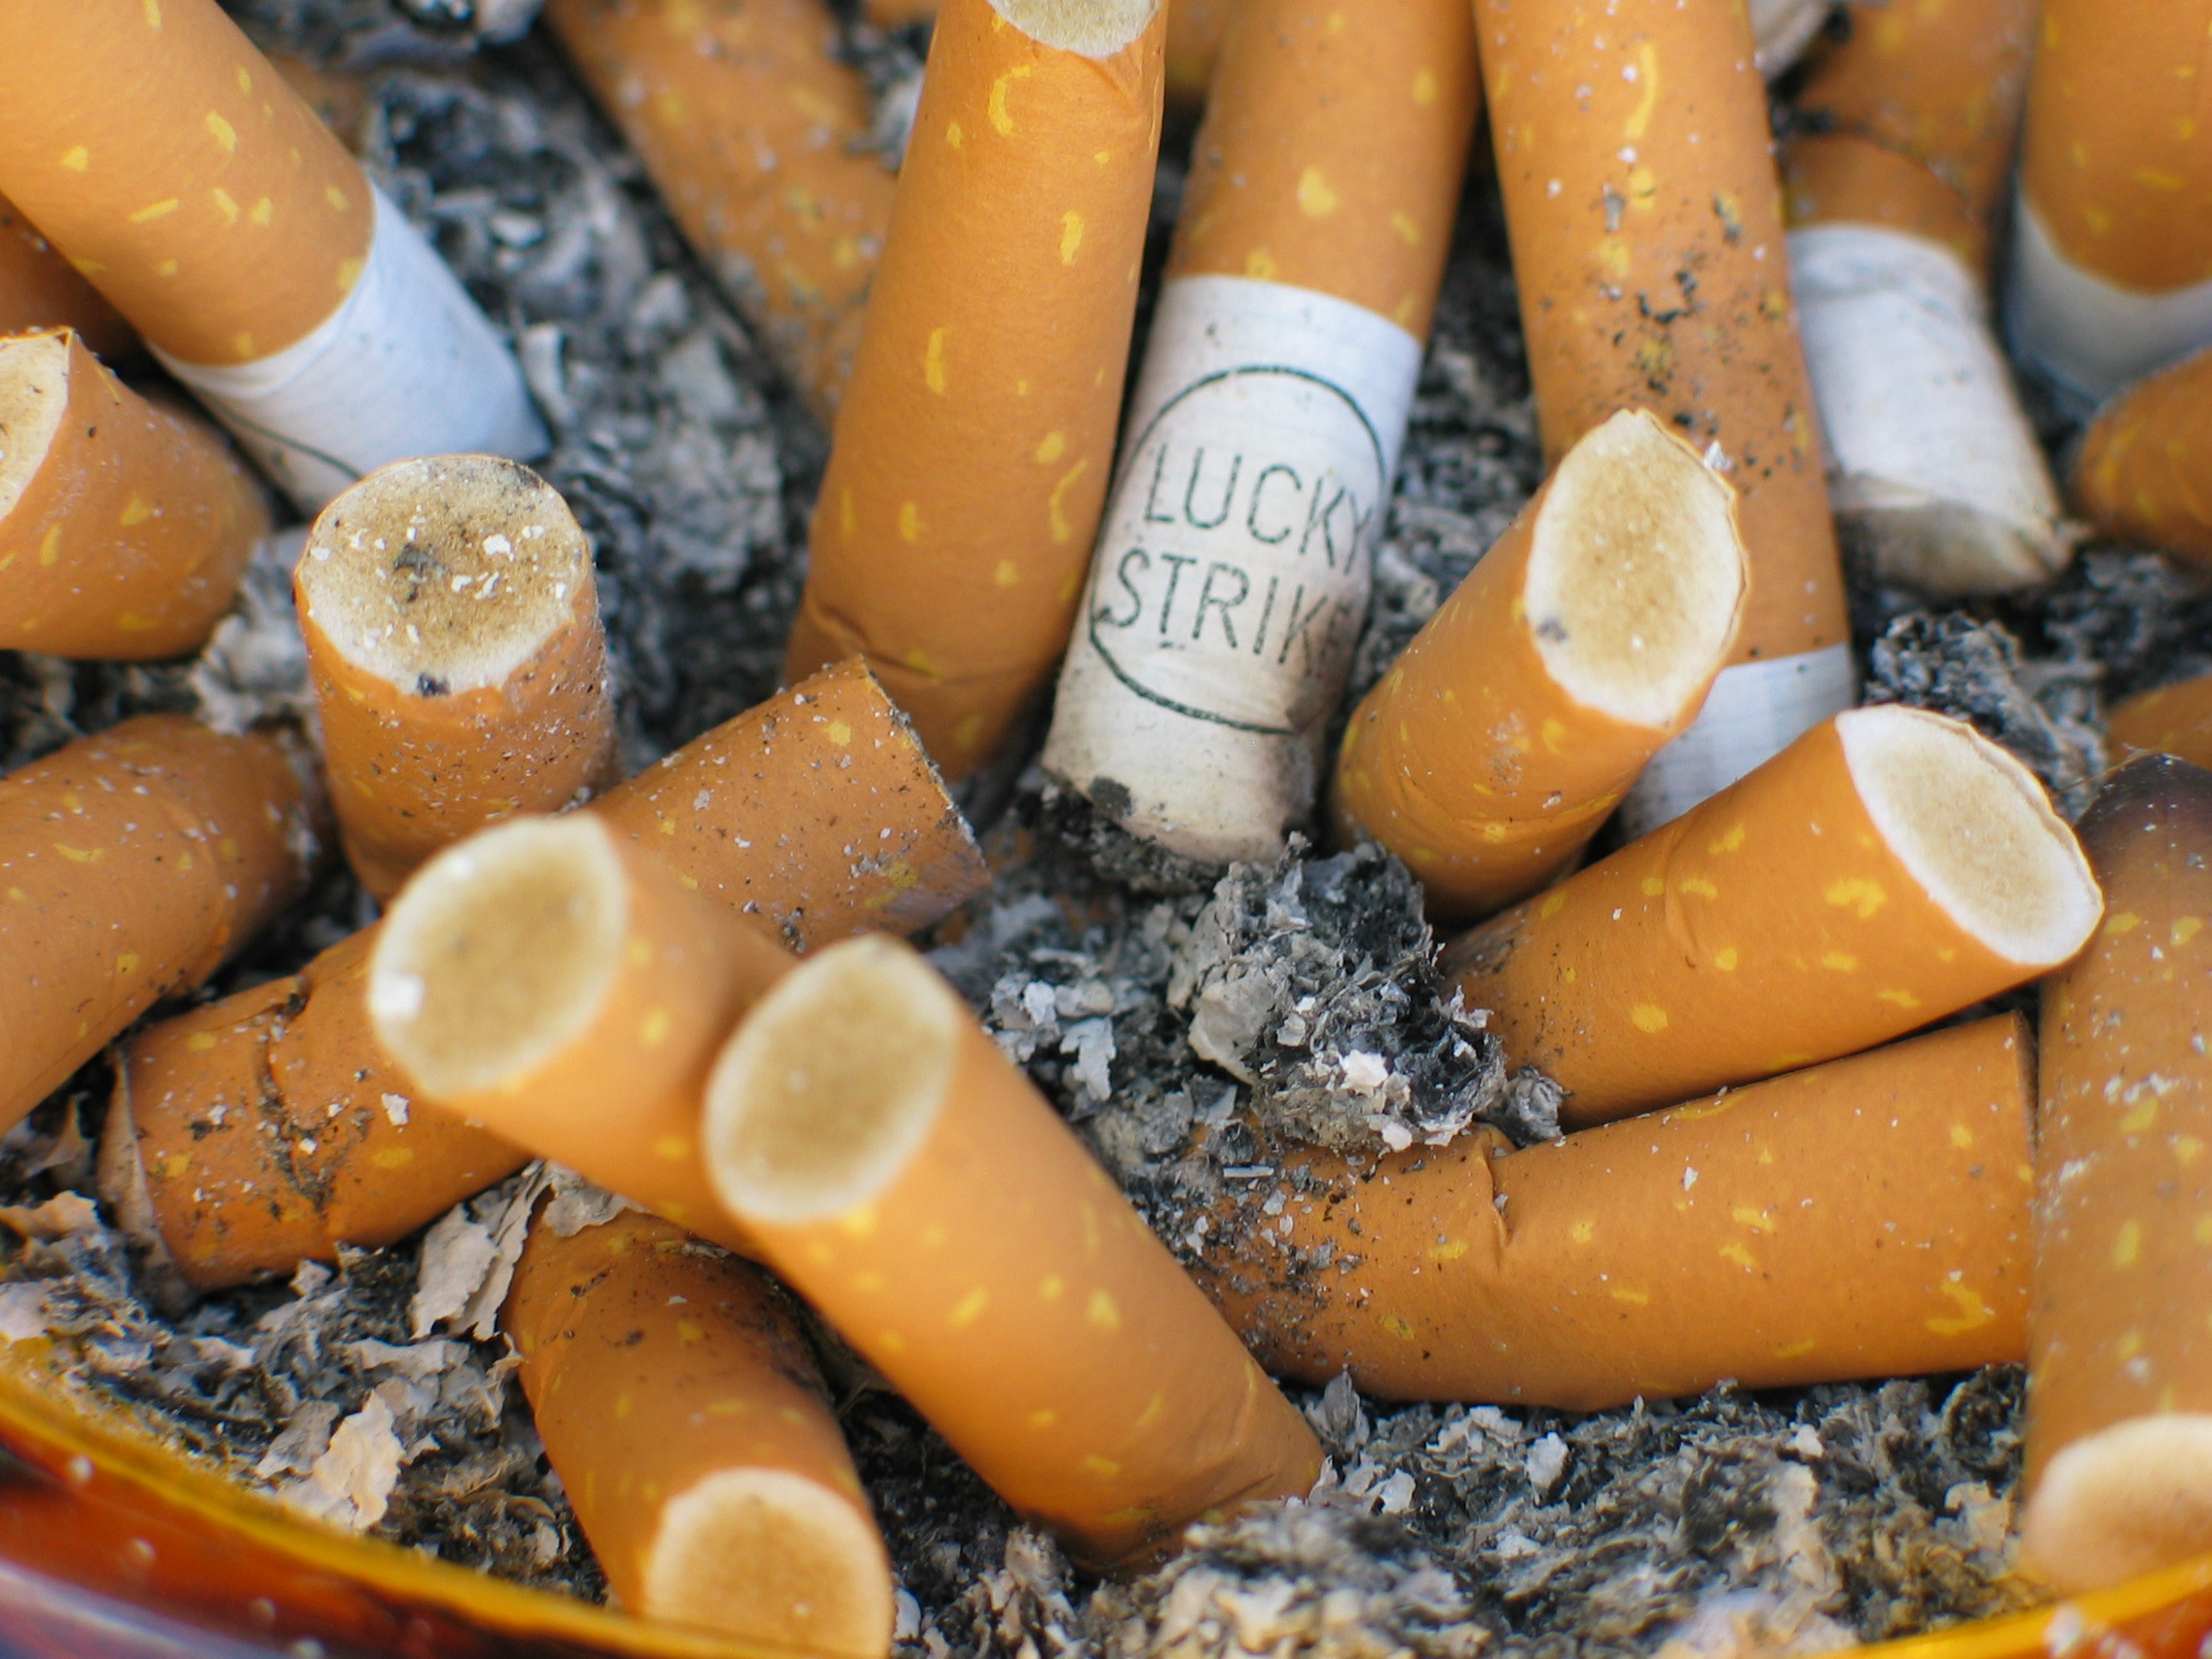 A closeup of an ashray packed with orange cigarette butts.